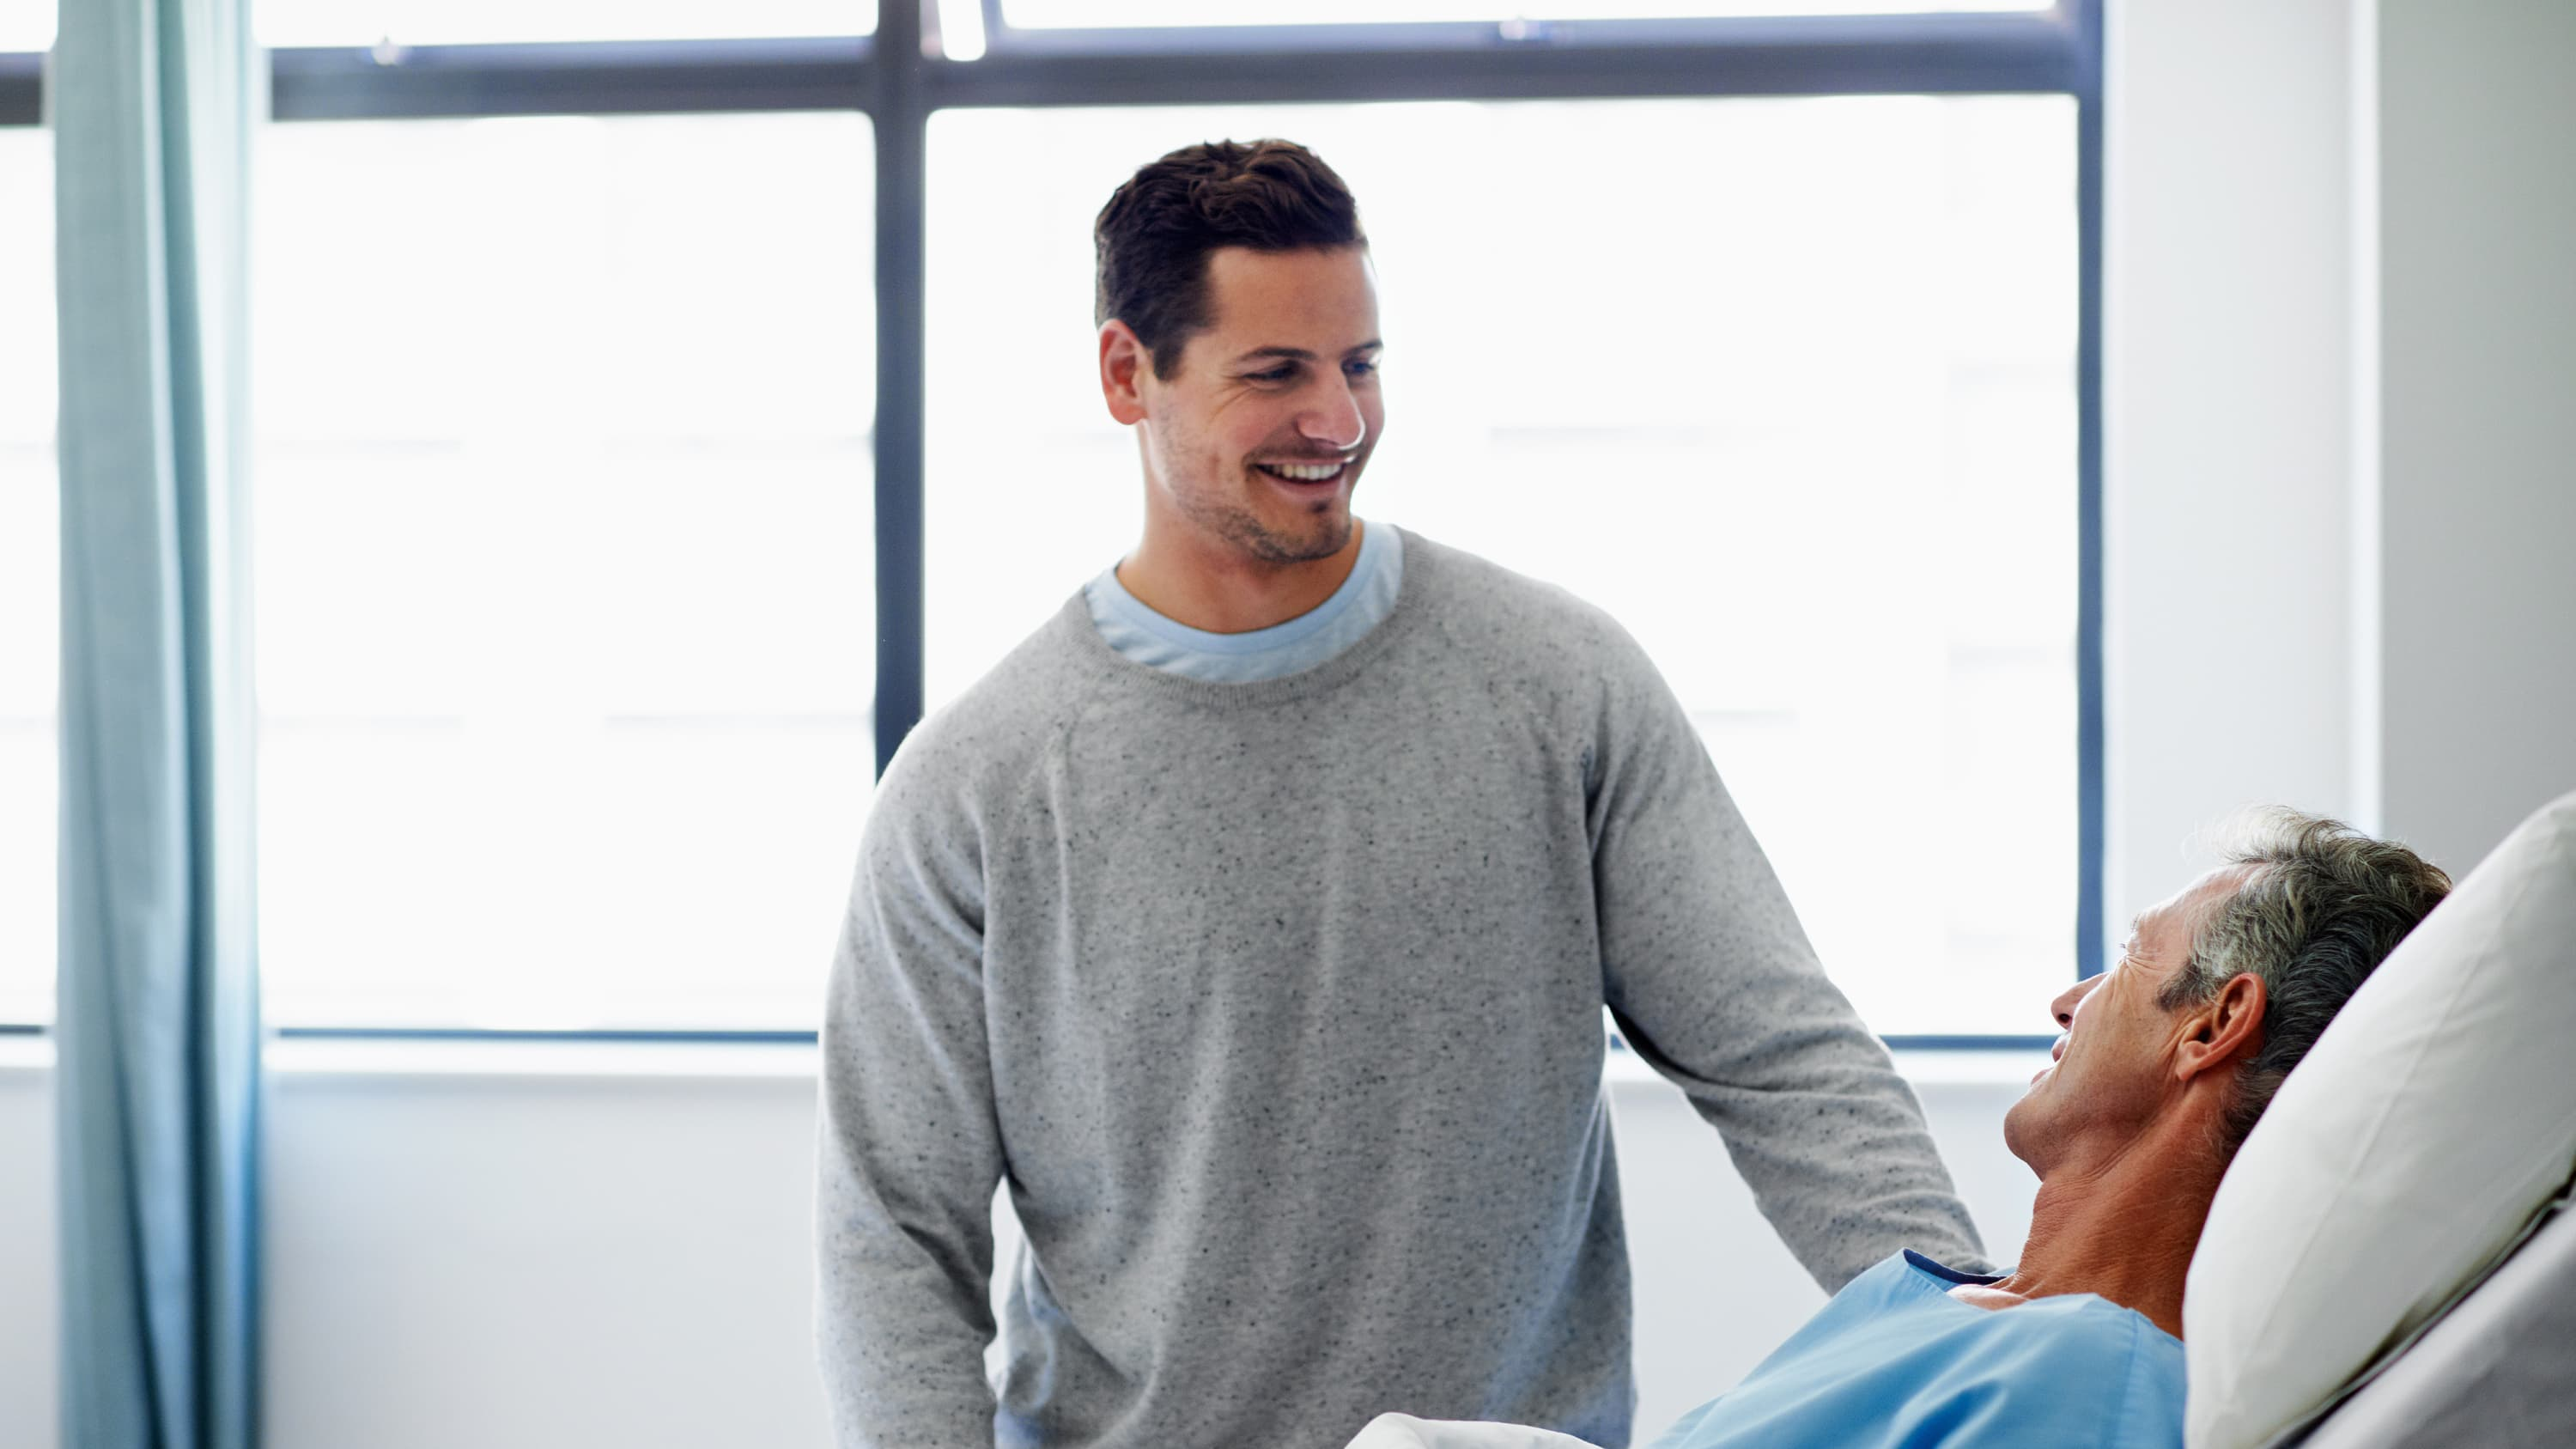 A visitor stands smiling at a patient's bedside after successful minimally invasive thoracic surgery